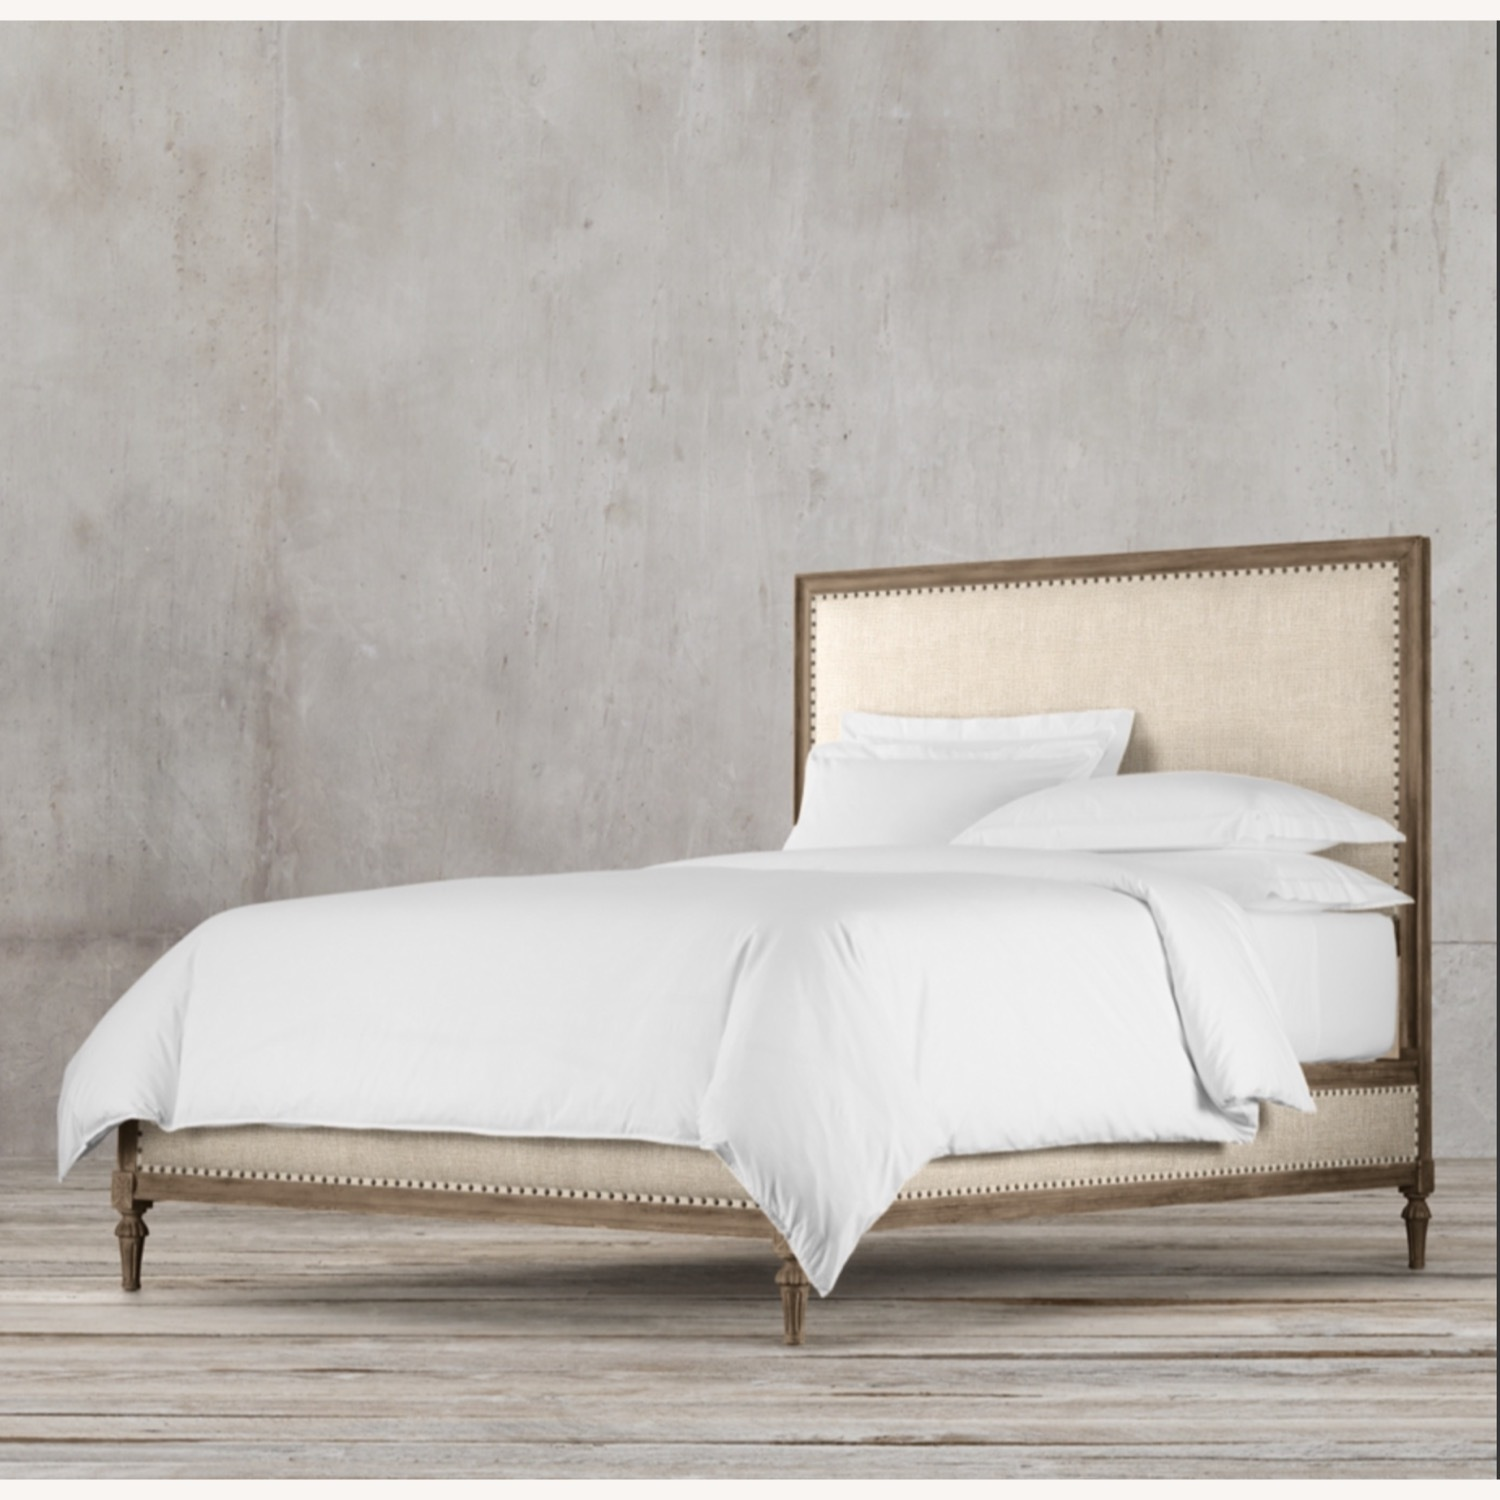 Restoration Hardware Maison Fabric Queen Bed - image-1